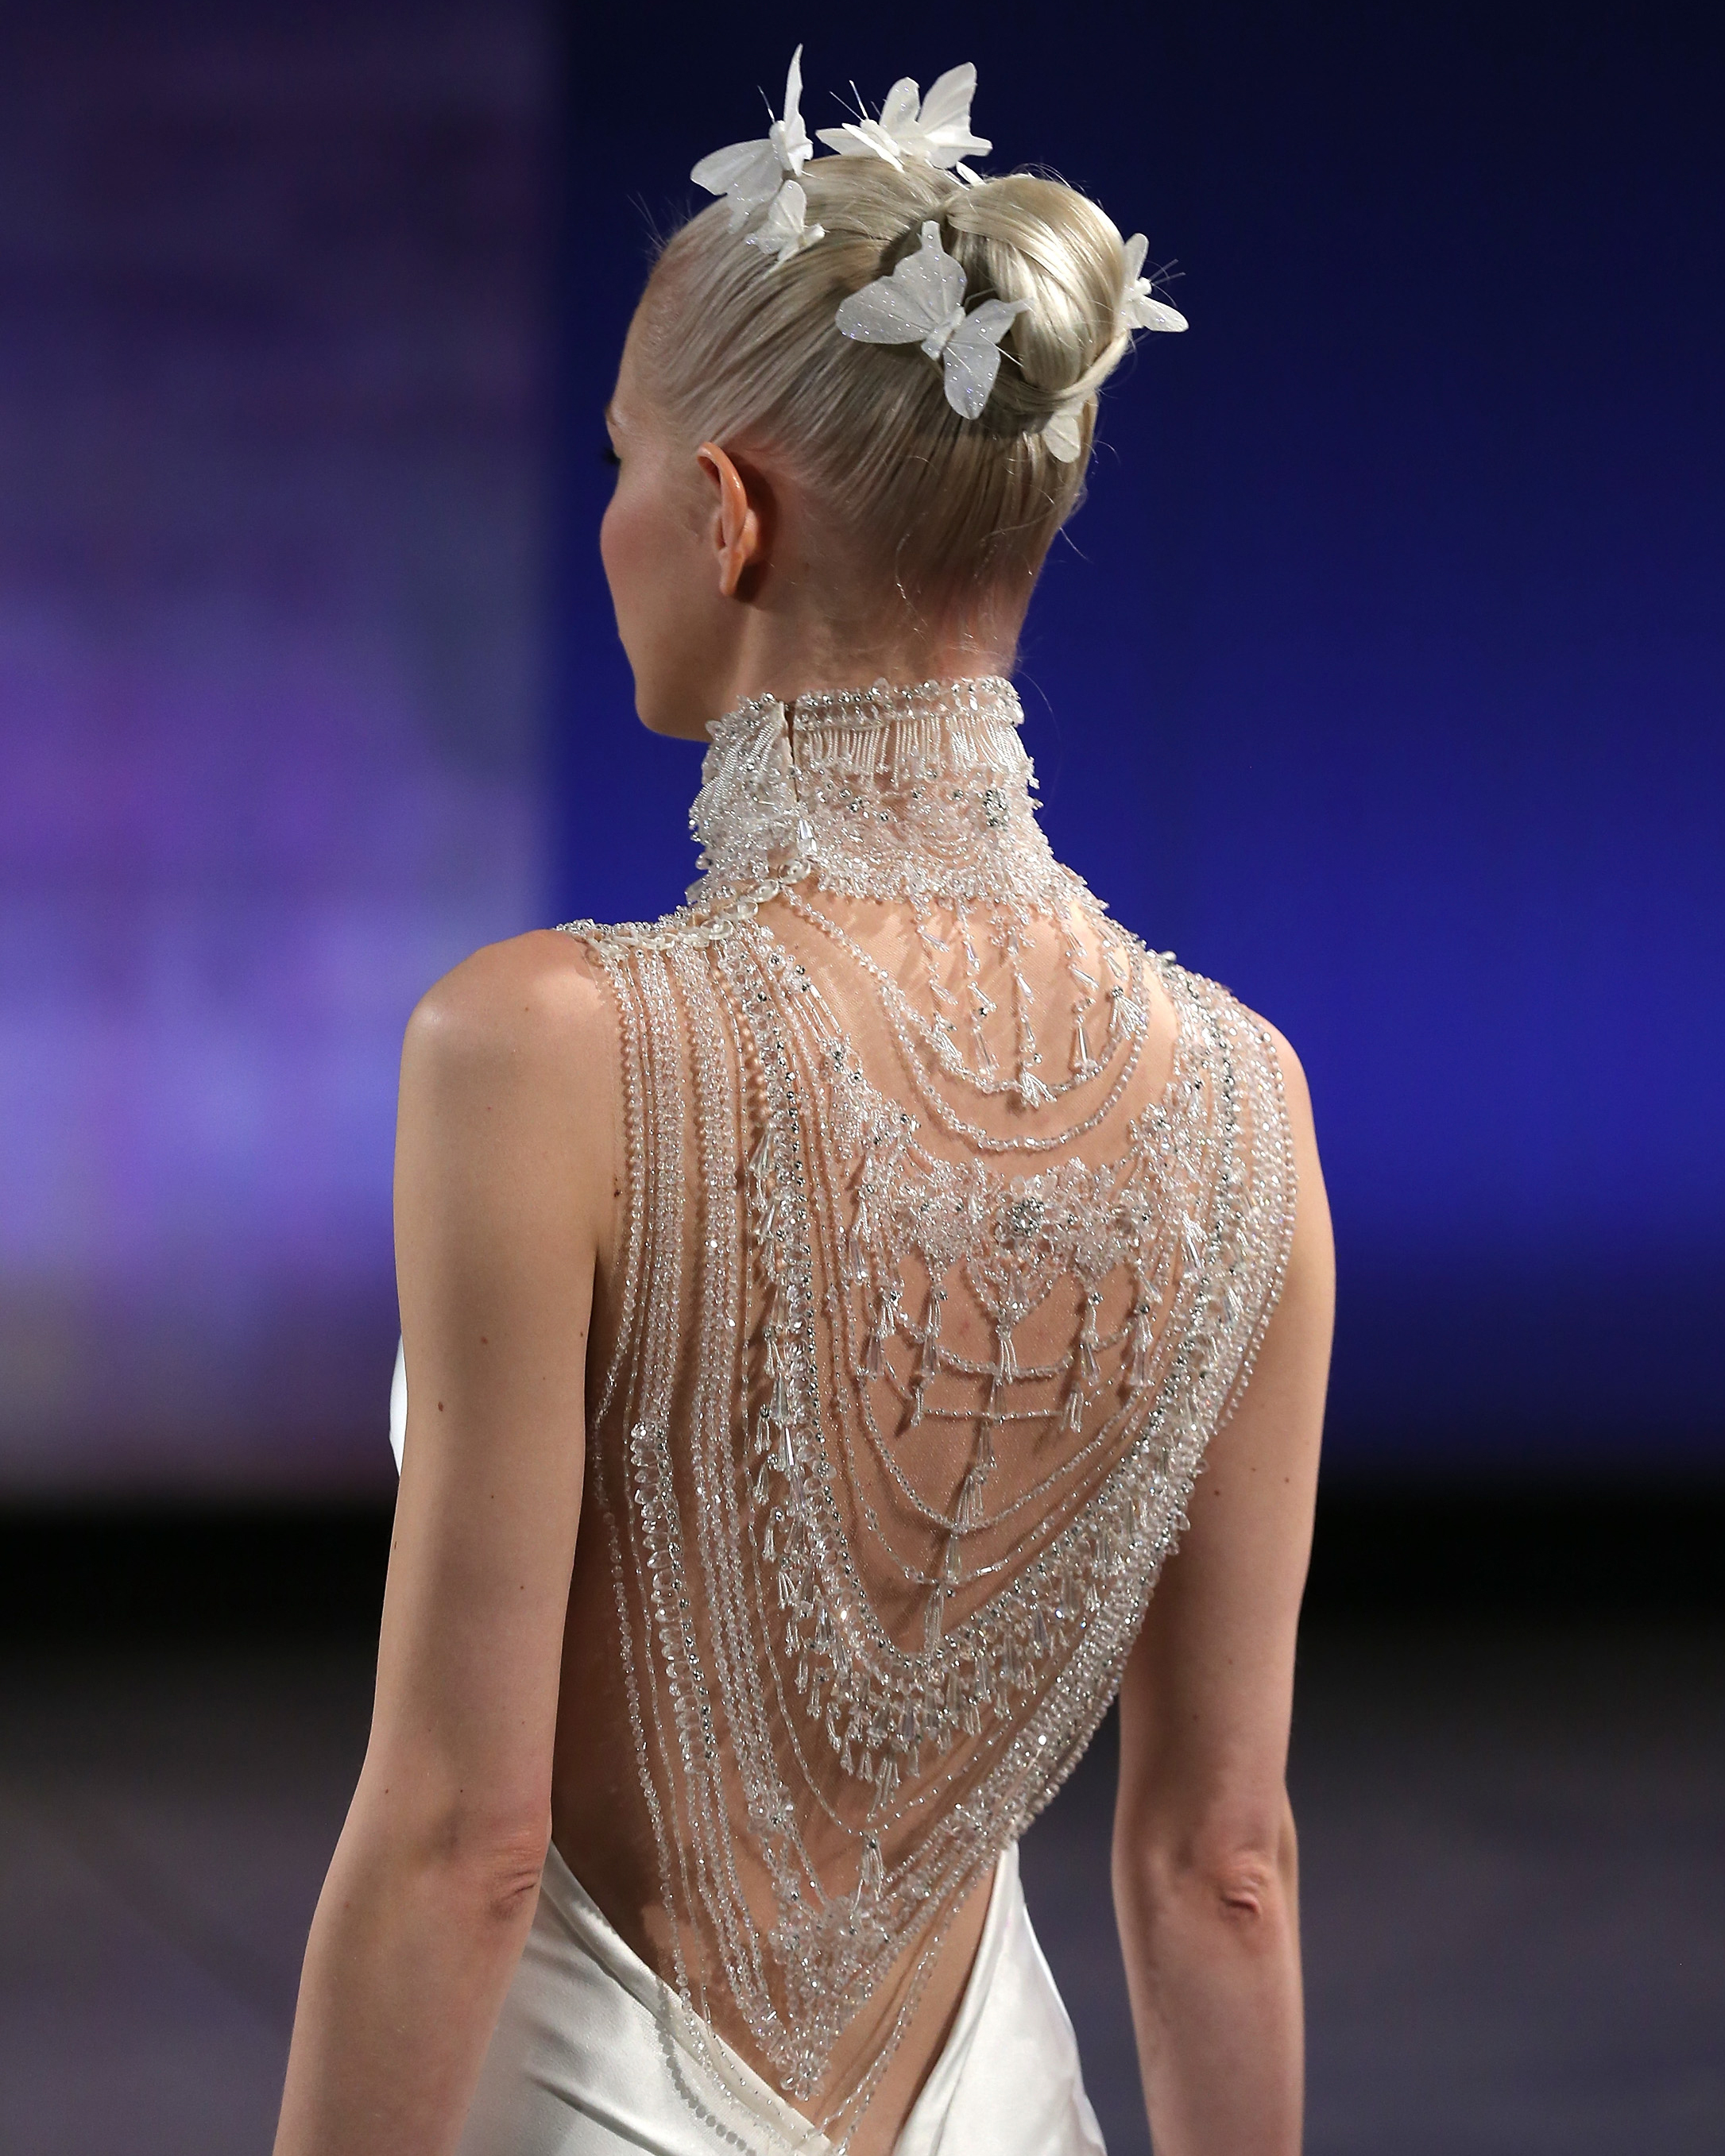 bridal-hair-adornments-spring2016-ines-di-santo-0415.jpg